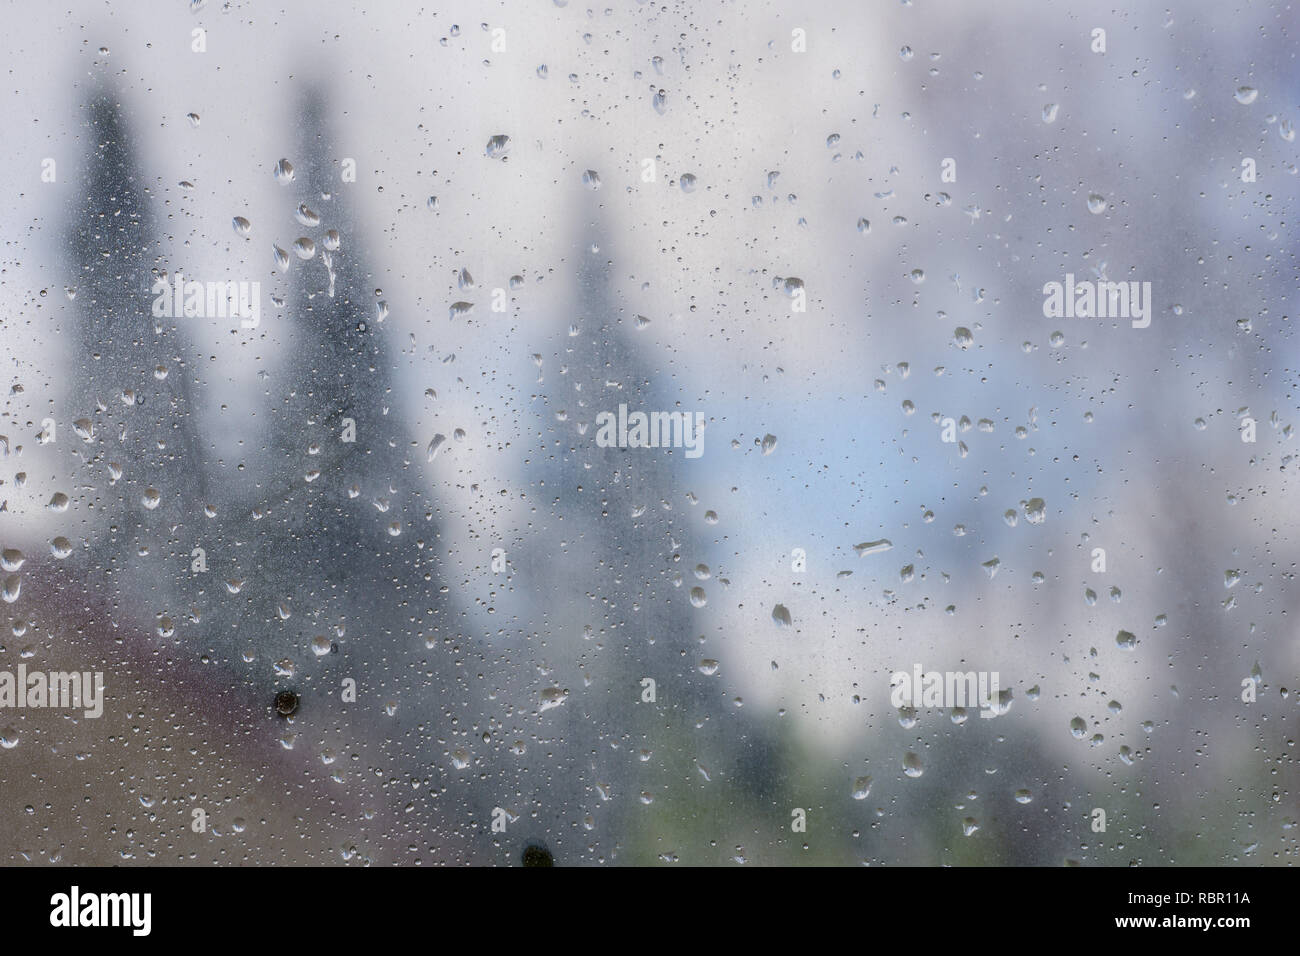 Drops of rain and condensation on the window, blurred trees in the background - Stock Image